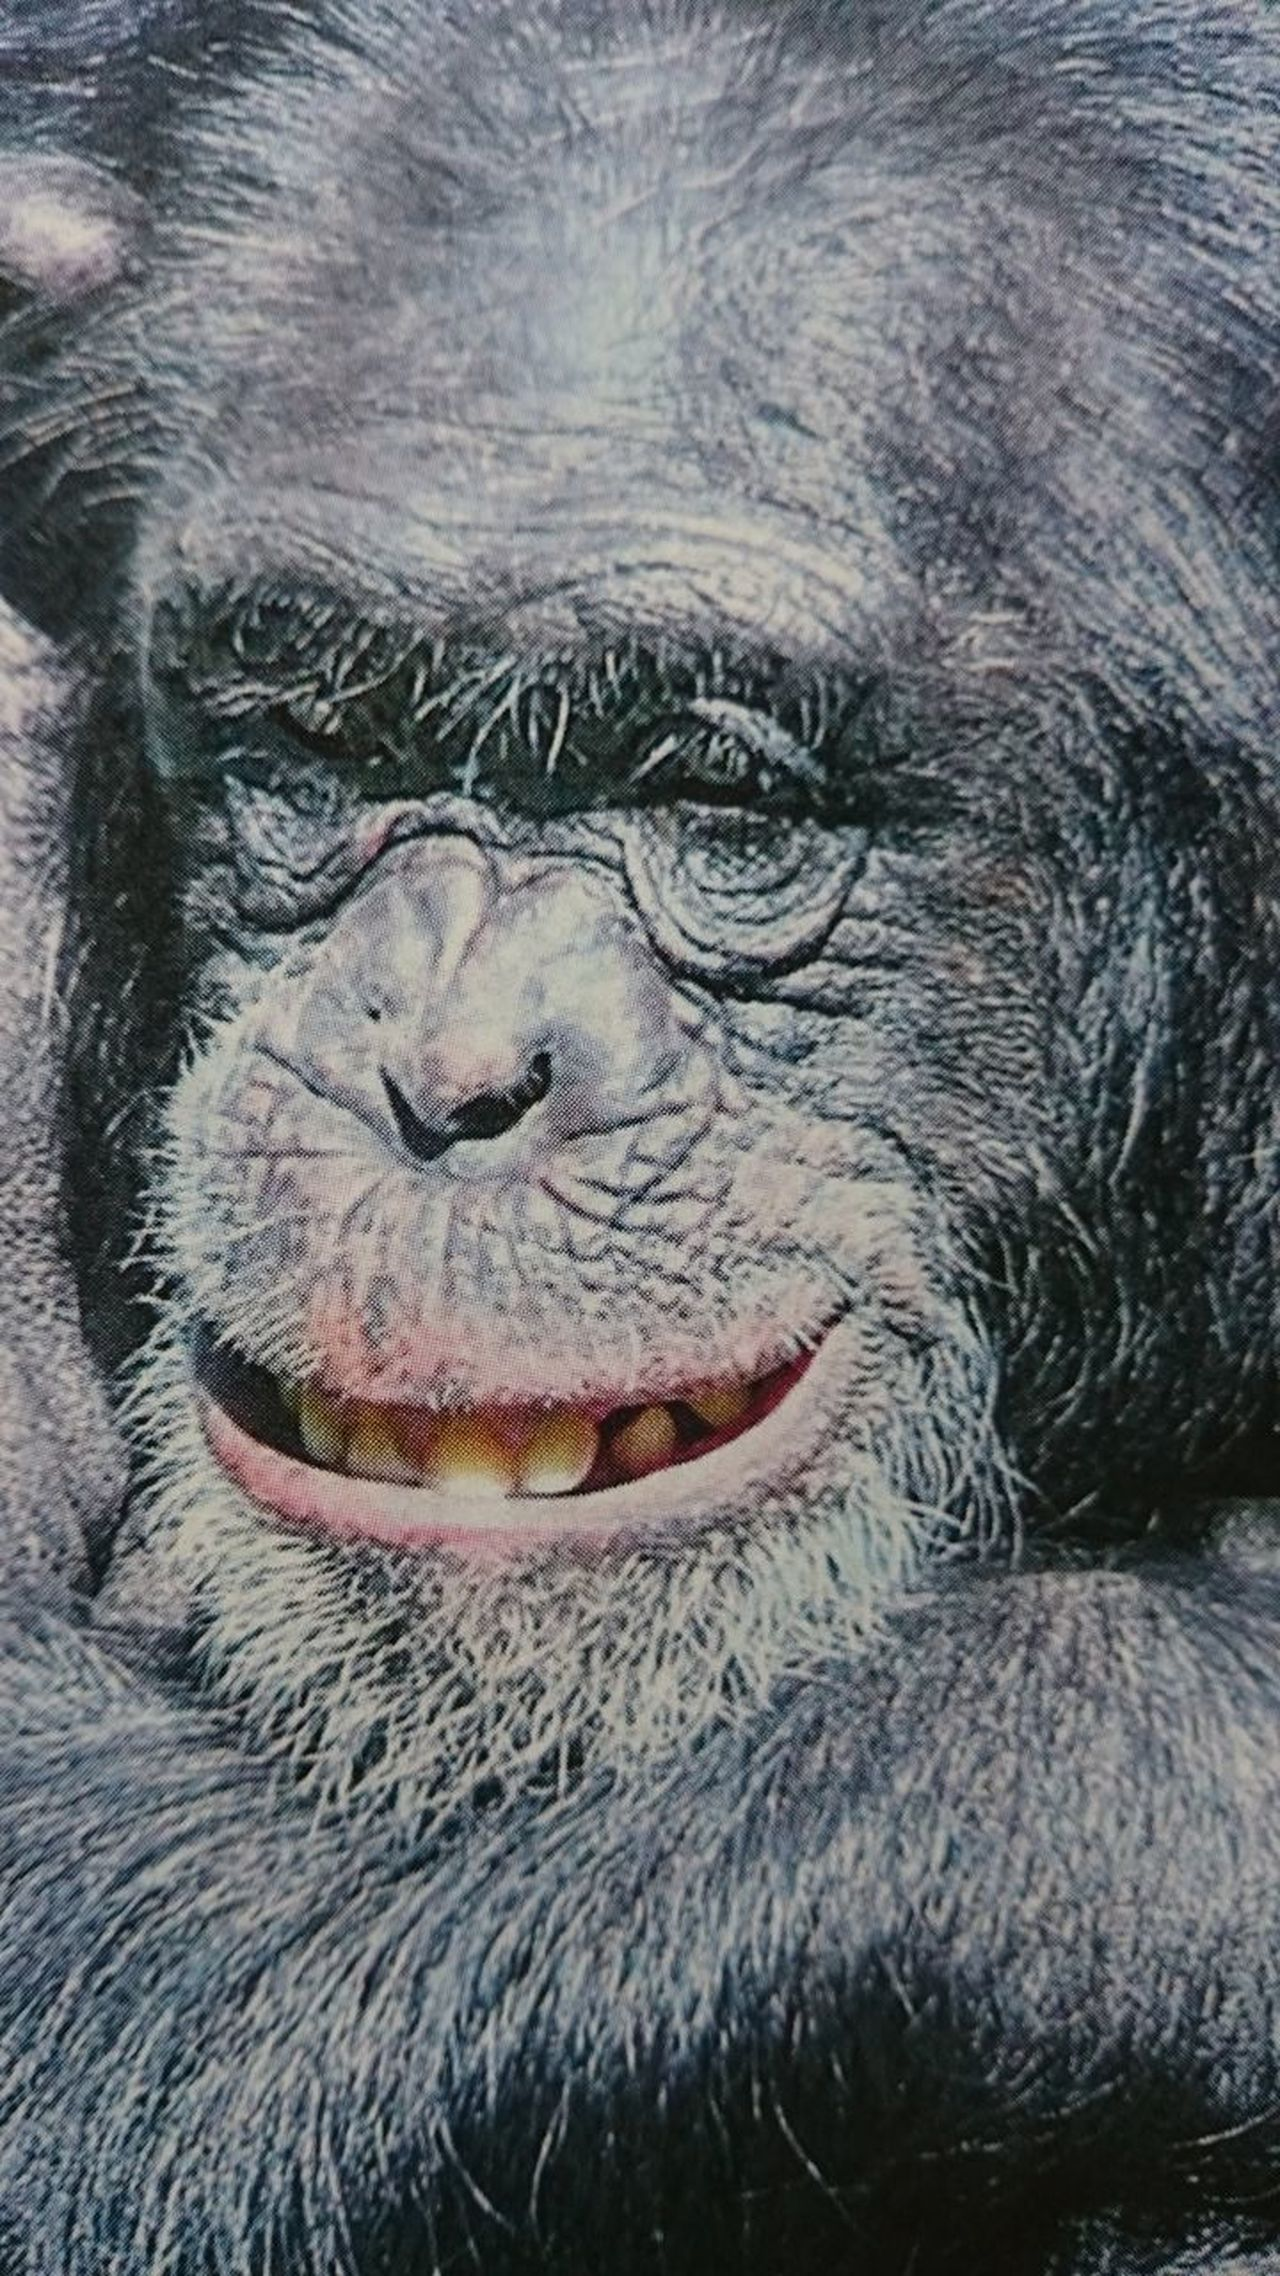 Animals In The Wild Close-up Day Keep Smiling Laughing Monkey No People Outdoors Take It Easy